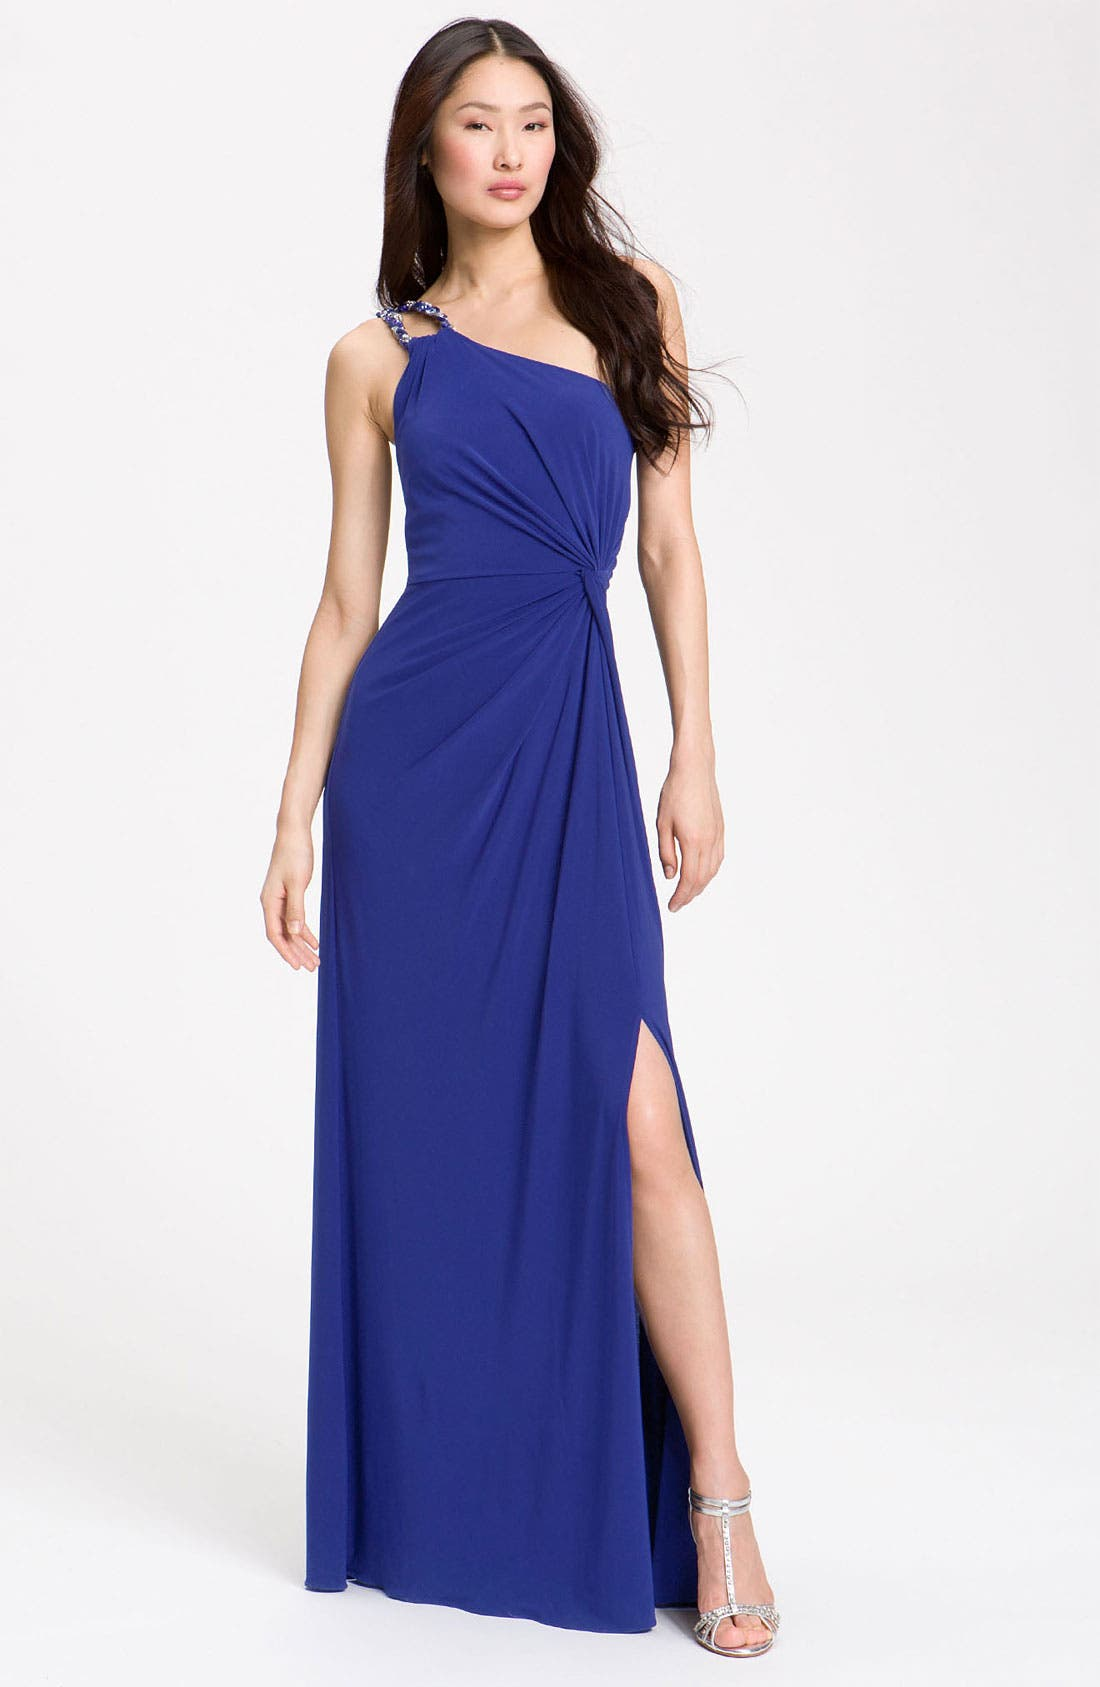 Alternate Image 1 Selected - JS Boutique Knotted One Shoulder Dress